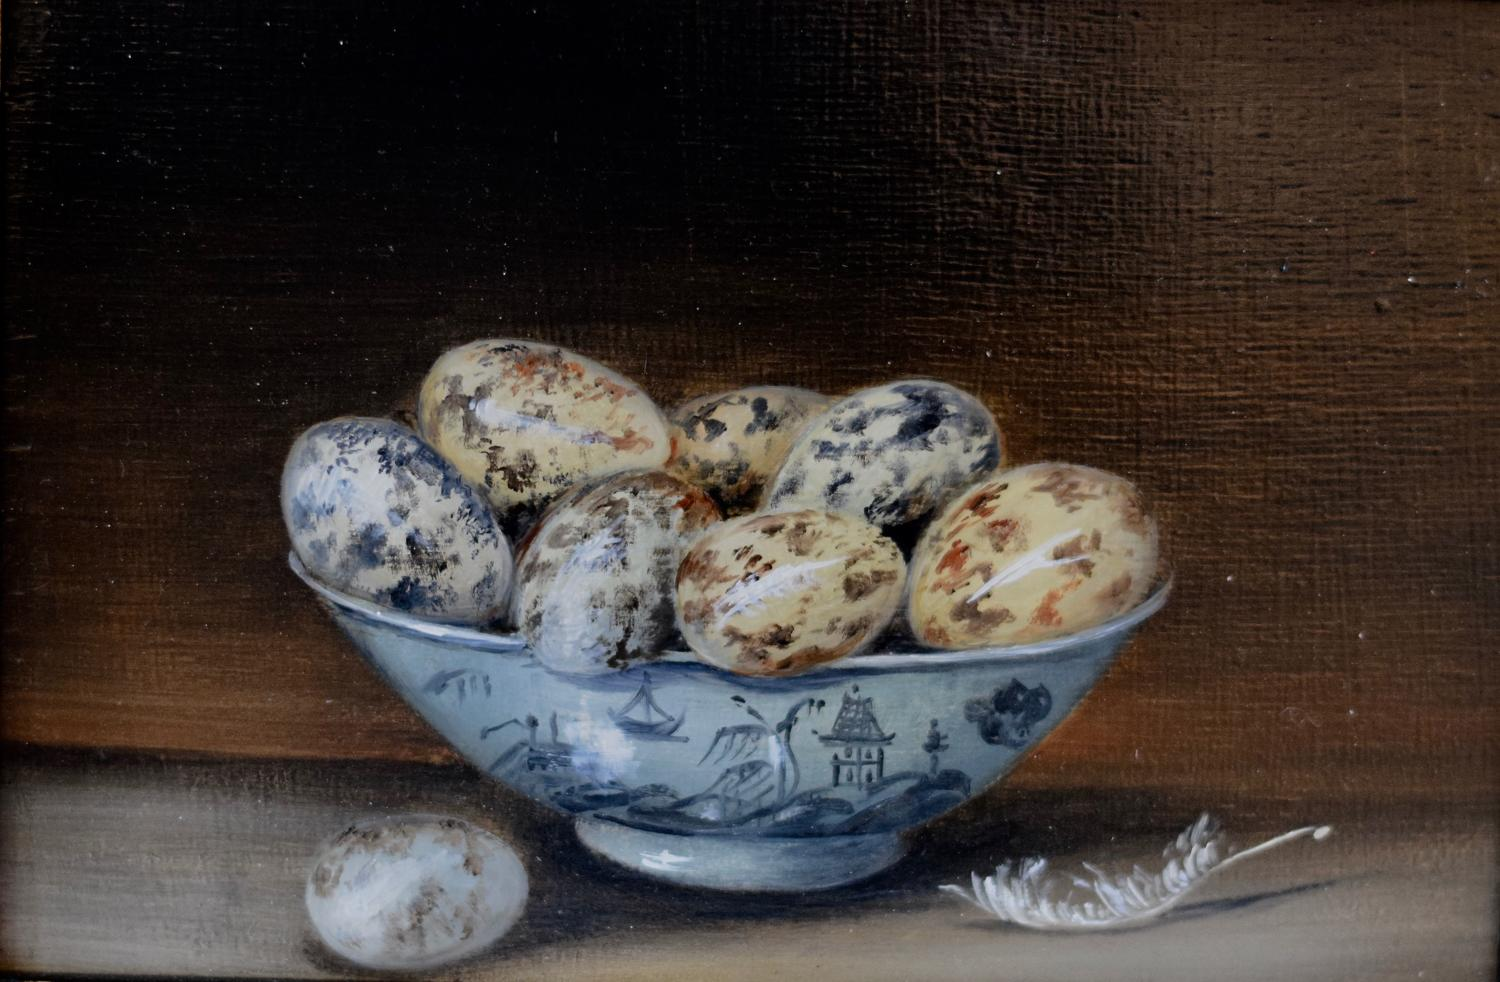 Painting of Quail's eggs